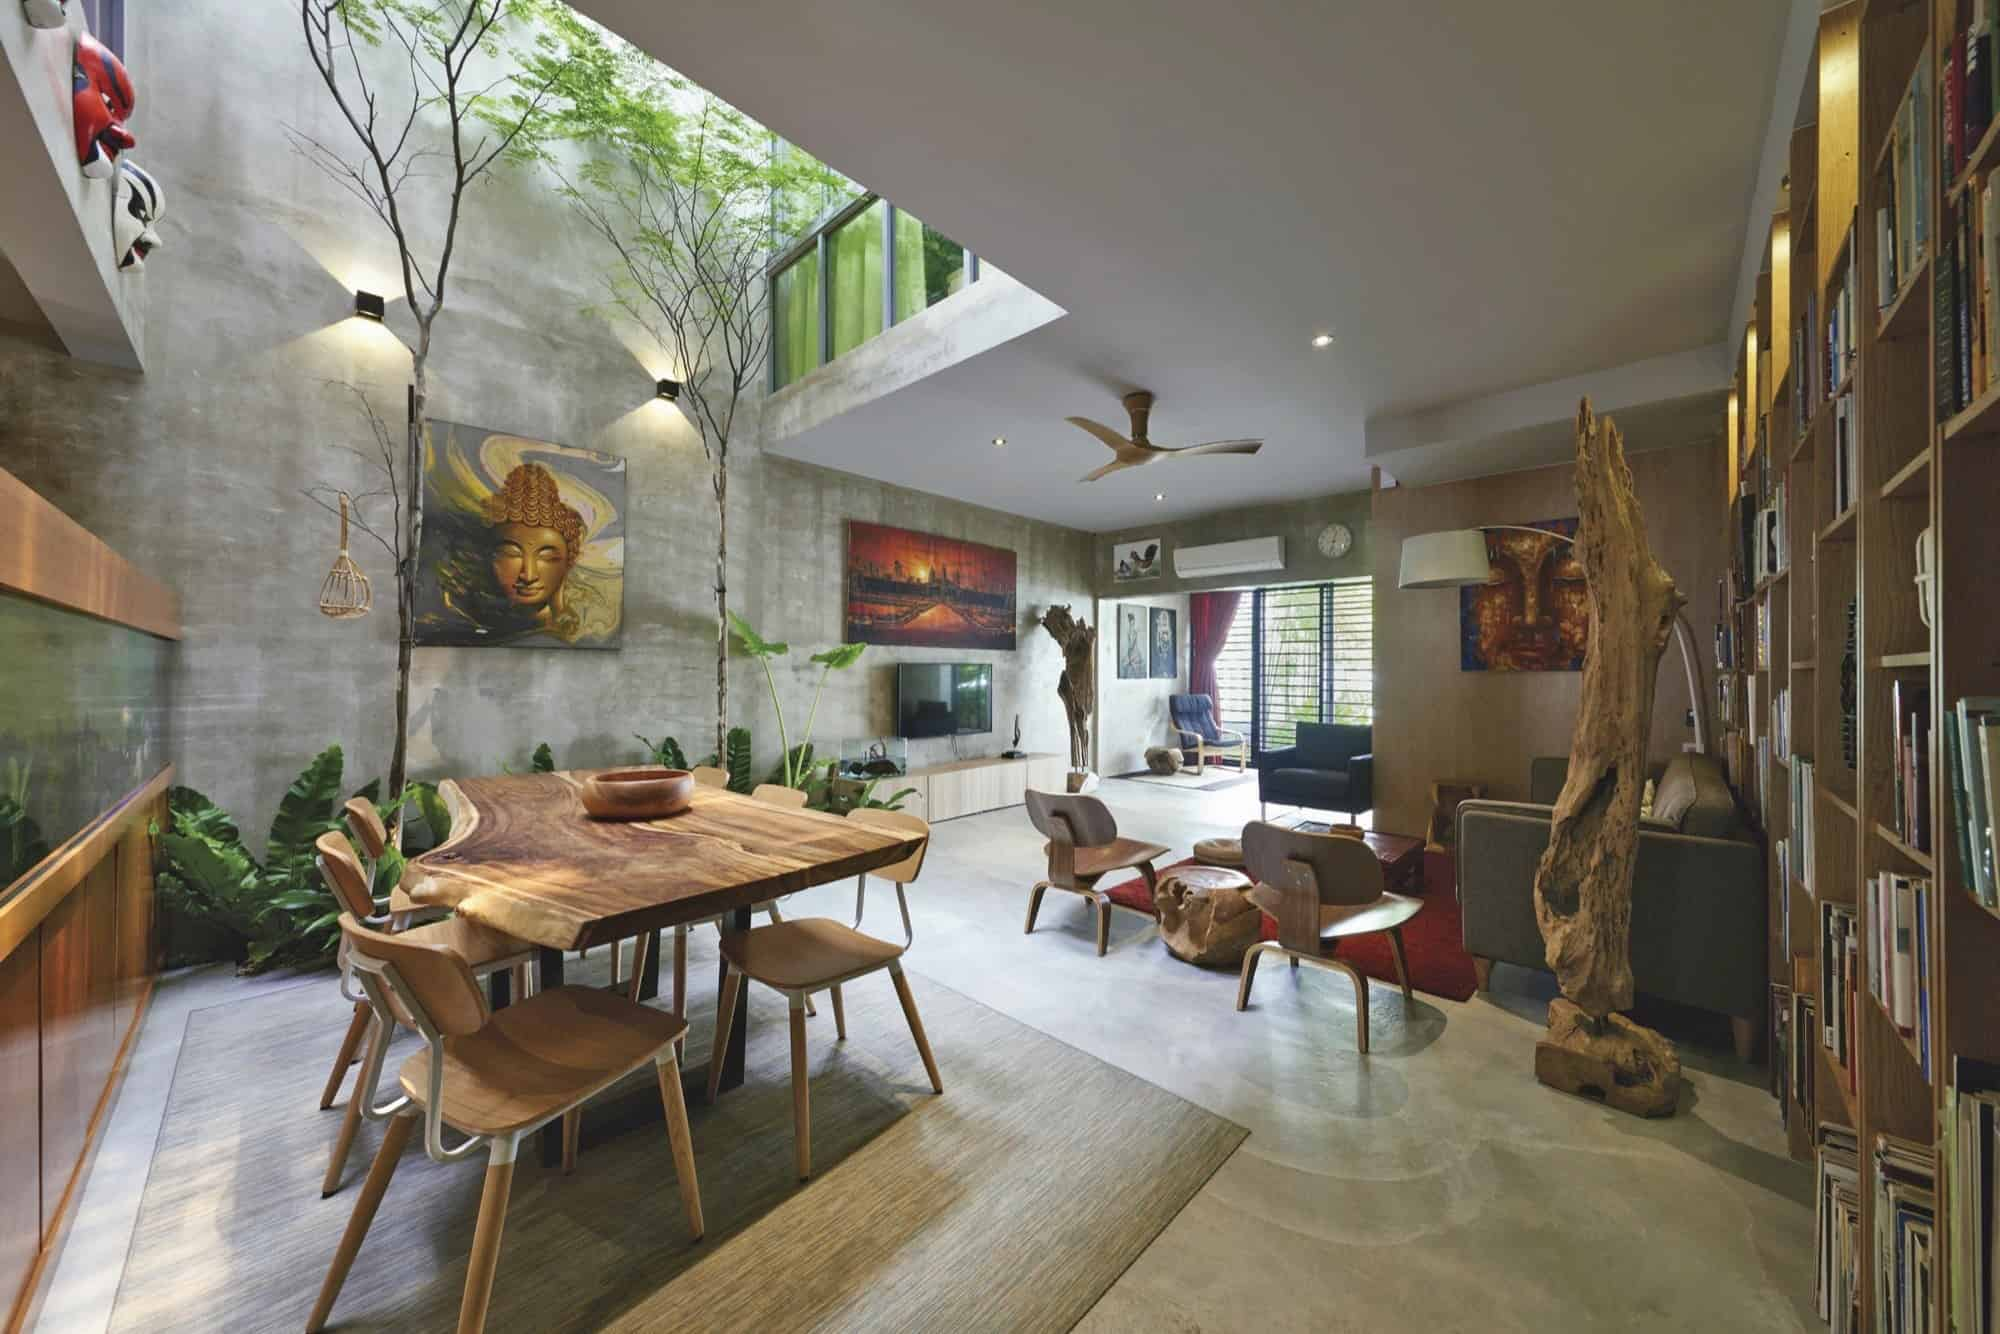 Trees and shrubs create faux courtyard inside house for Interior design in a box